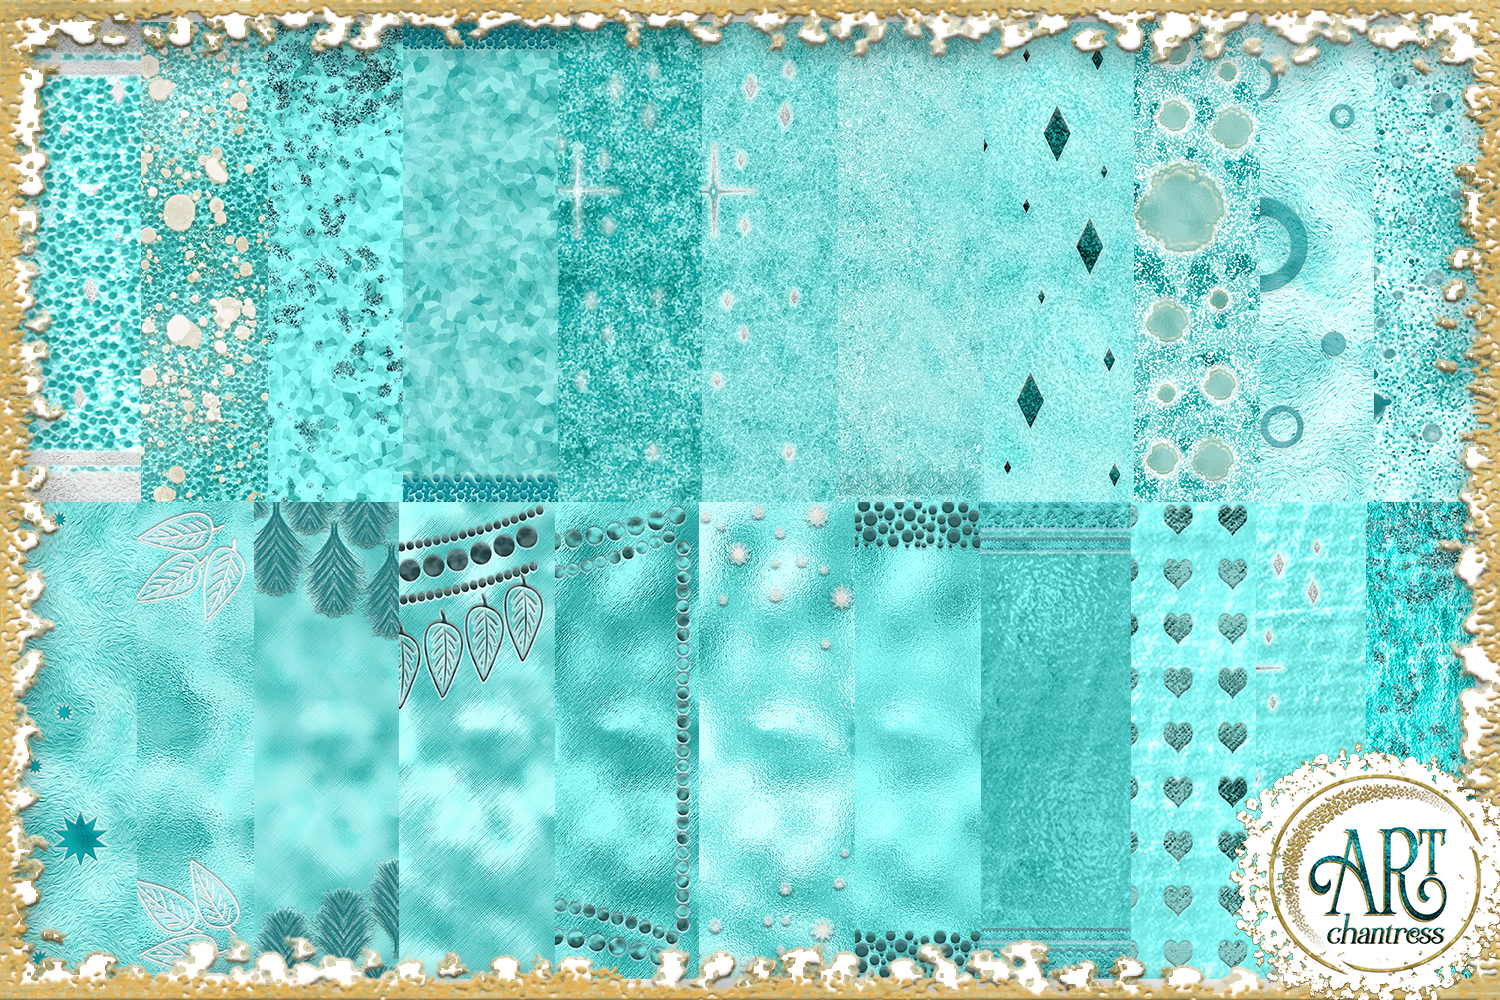 Teal Aqua Foil Glitter Seamless Digital Papers,Borders Set example image 2